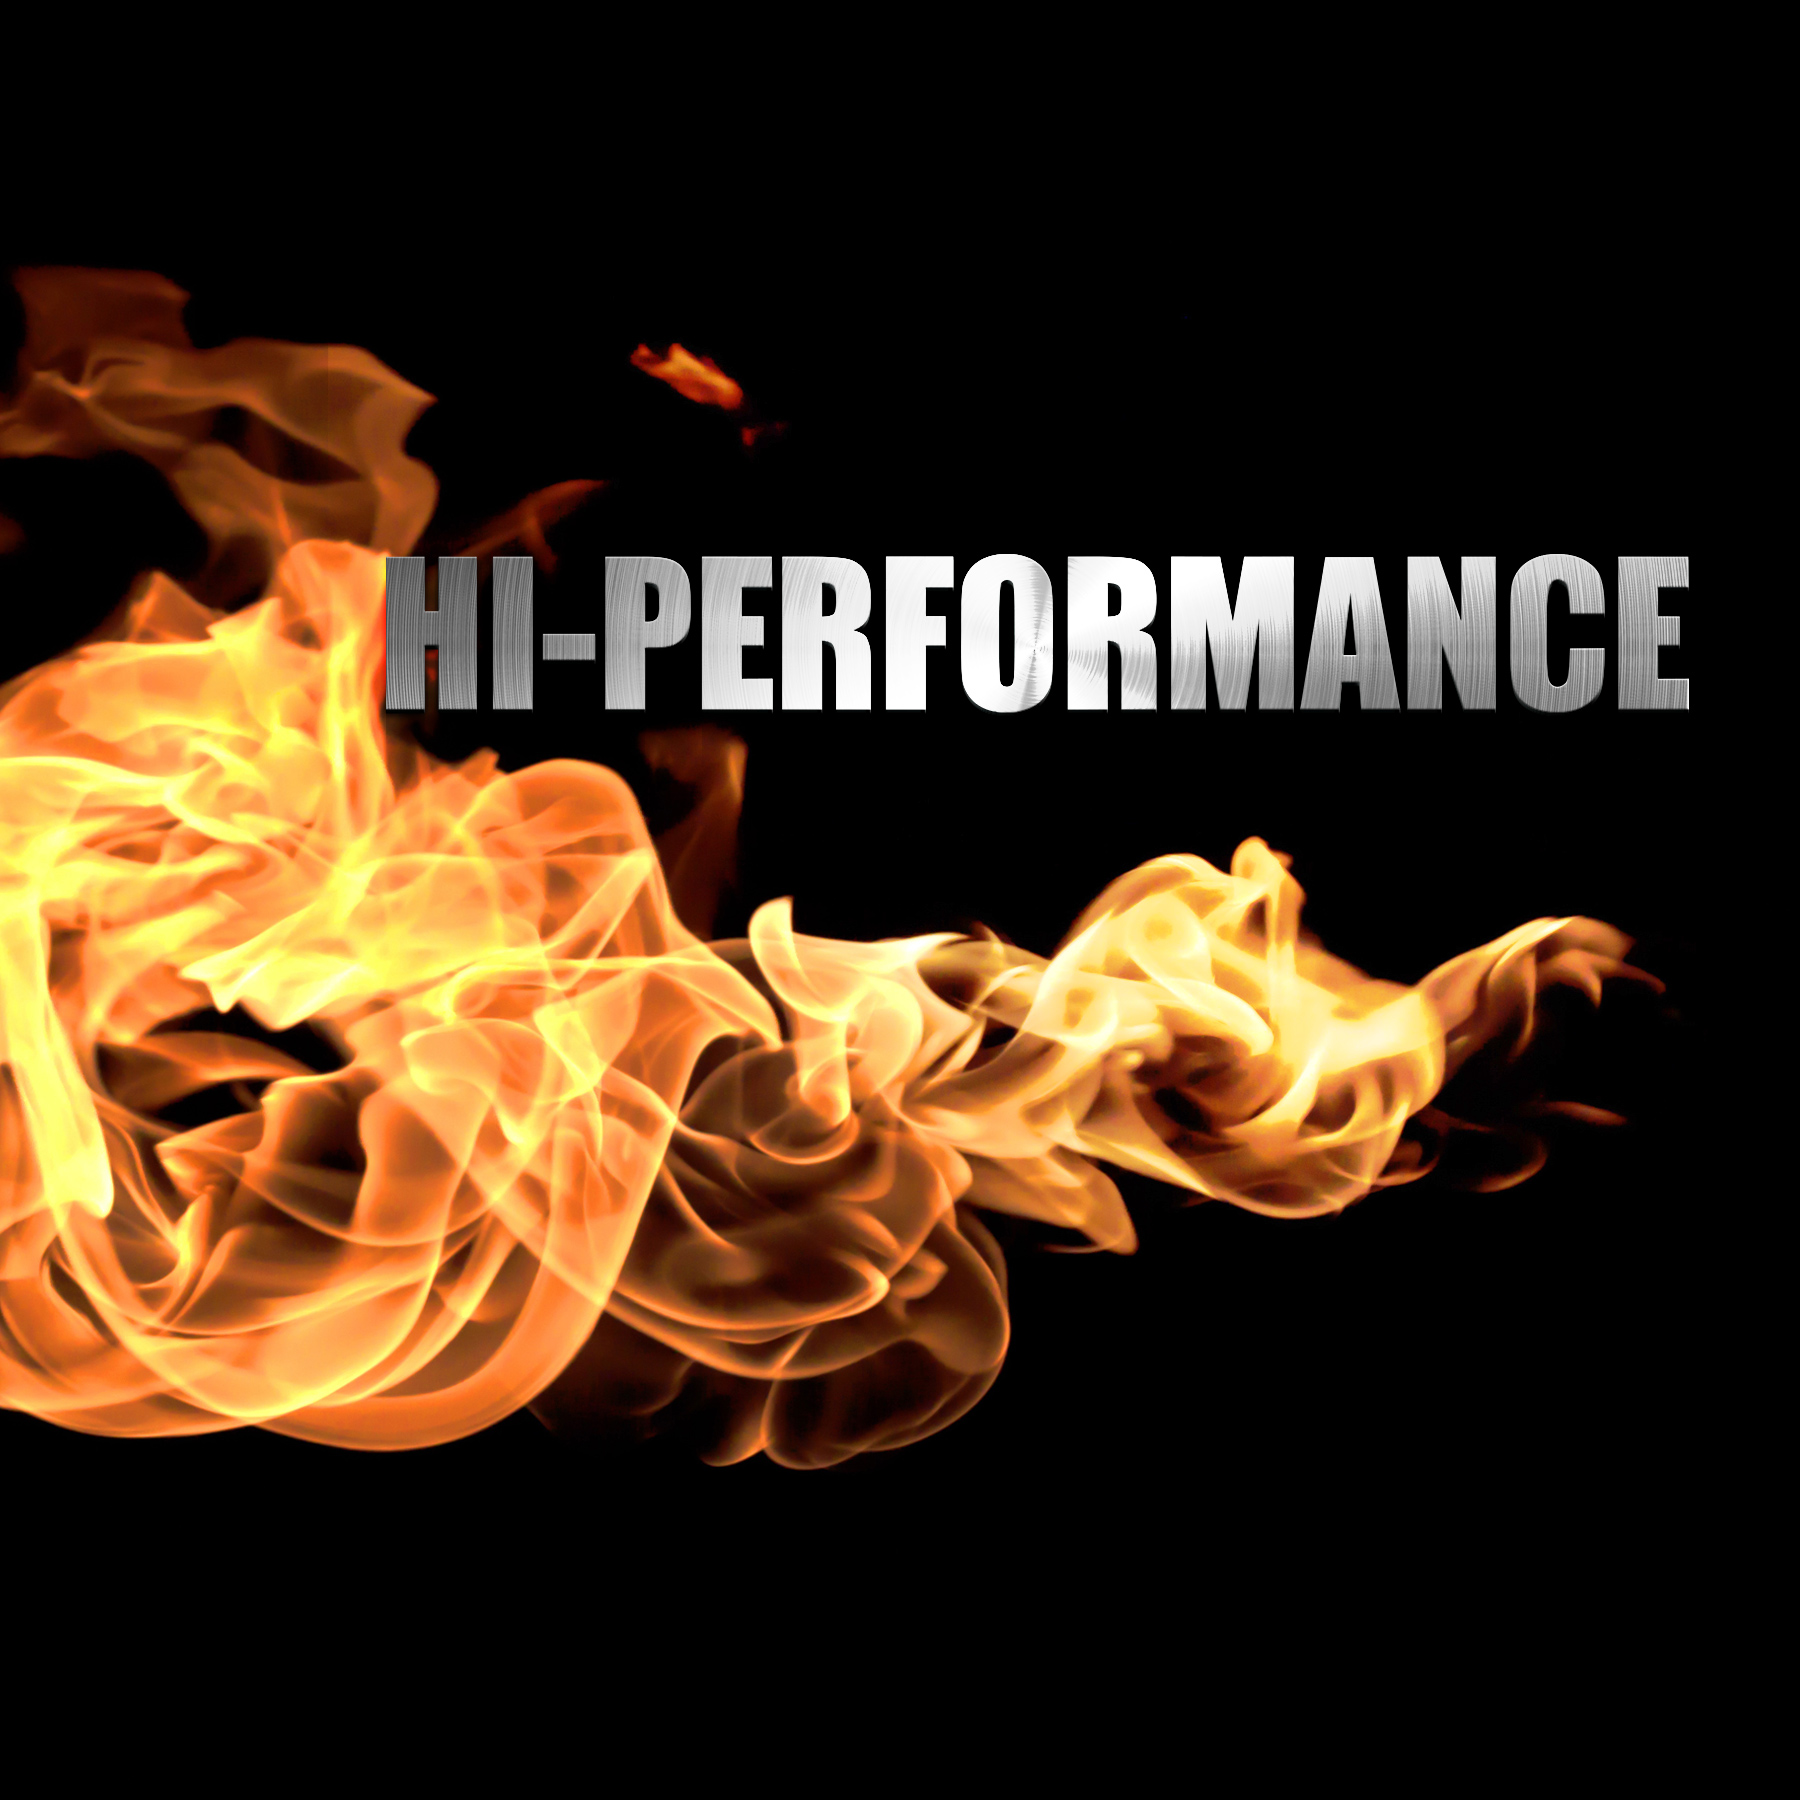 Hi-performance